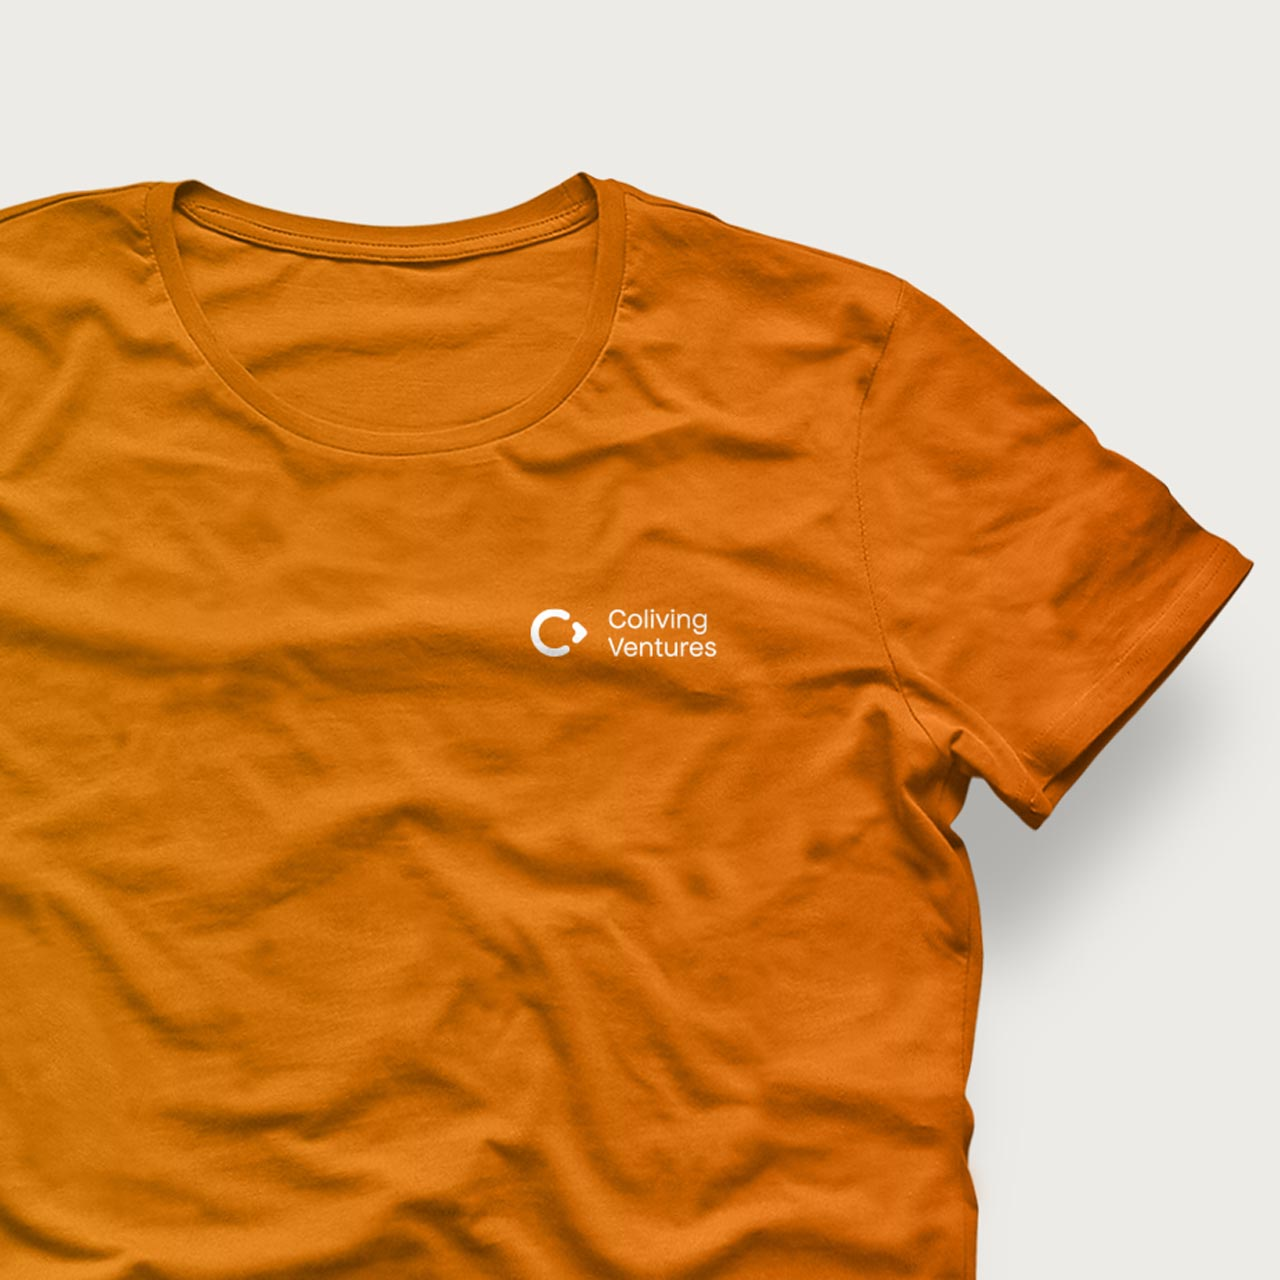 Orange T-Shirt Design with white Coliving Ventures logo by SPX Studio